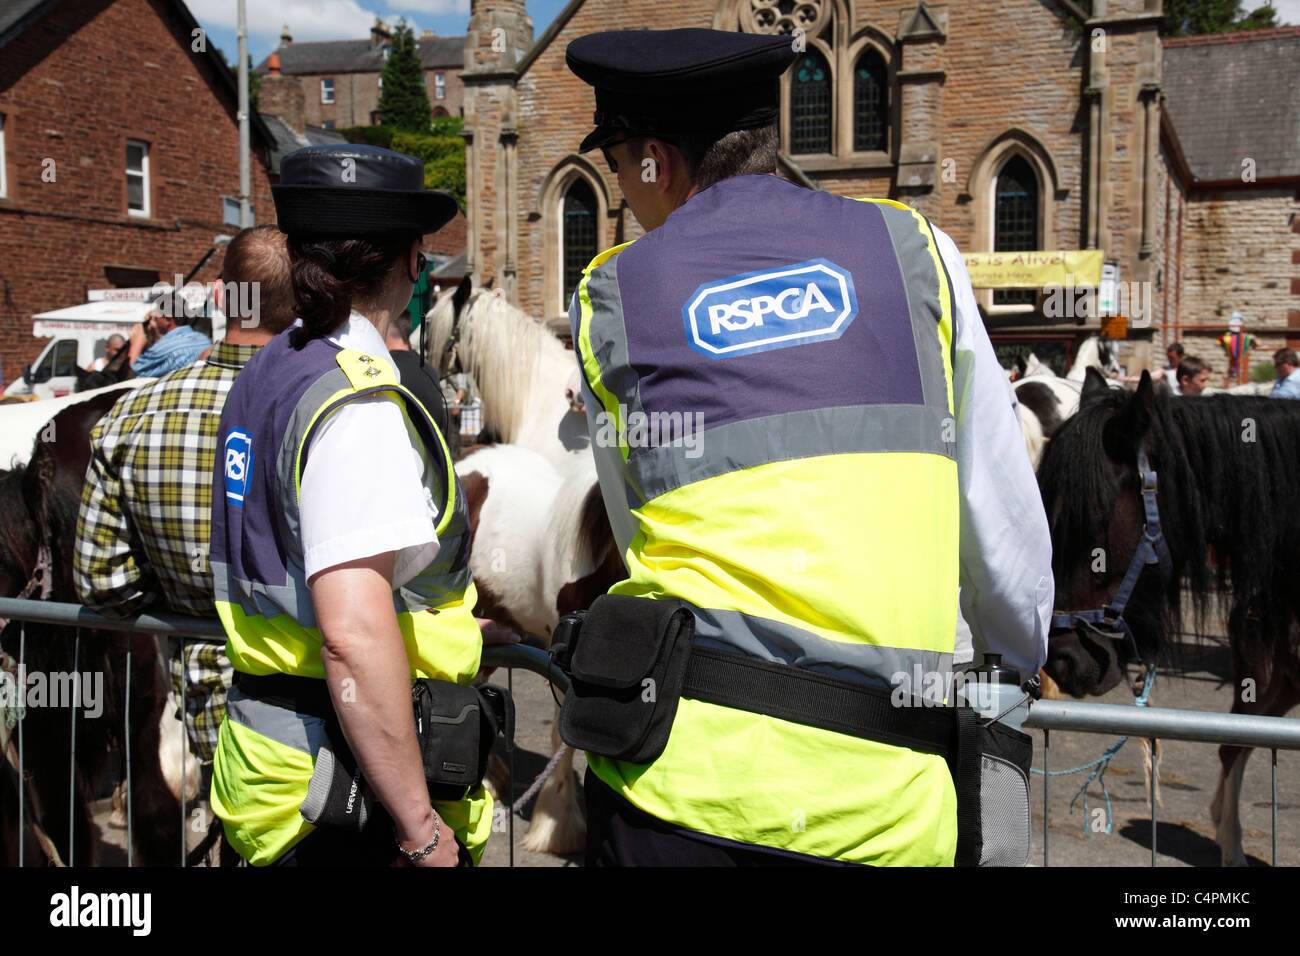 The RSPCA monitoring events at the Appleby Horse Fair, Appleby-In-Westmorland, Cumbria, England, U.K. - Stock Image